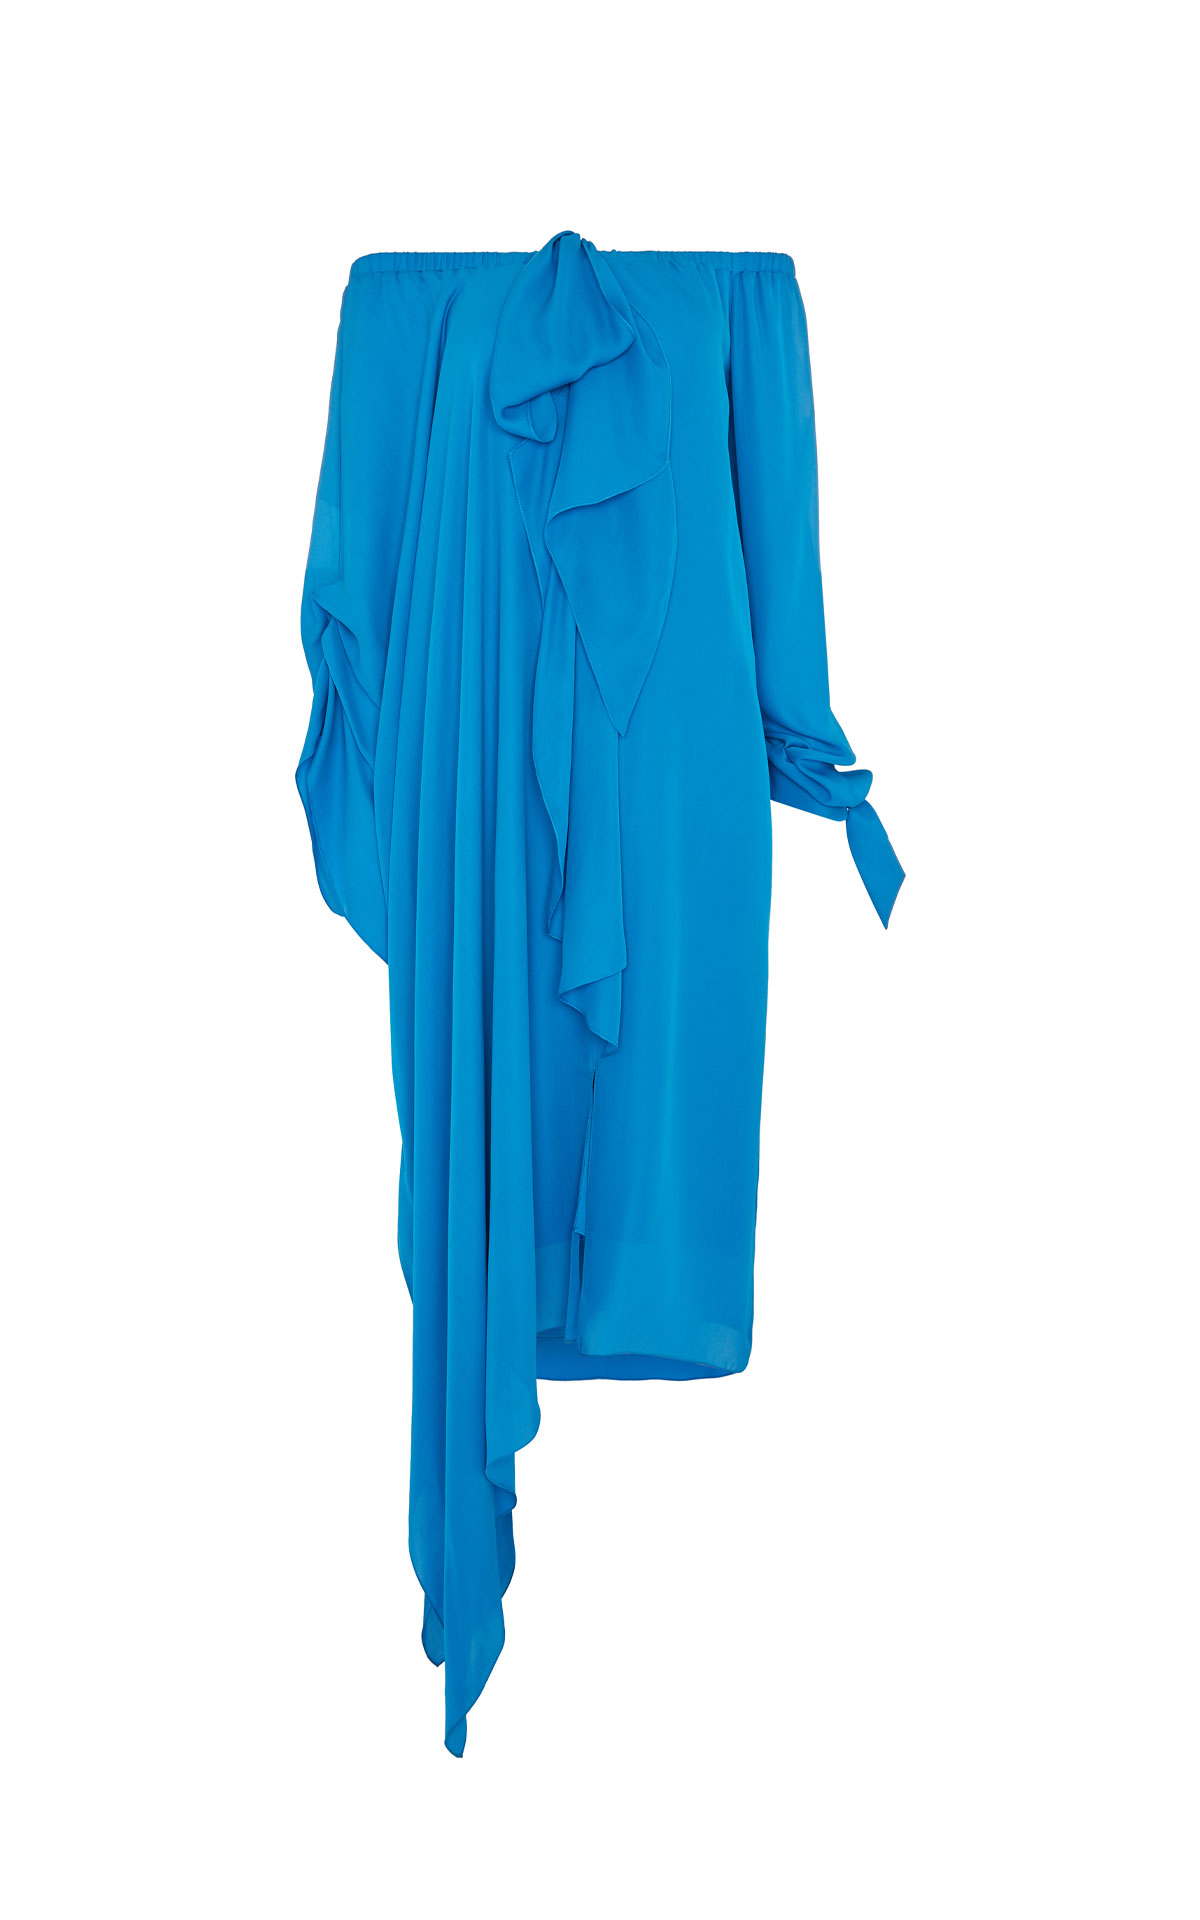 Roland Mouret Caldera azure blue dress from Bicester Village